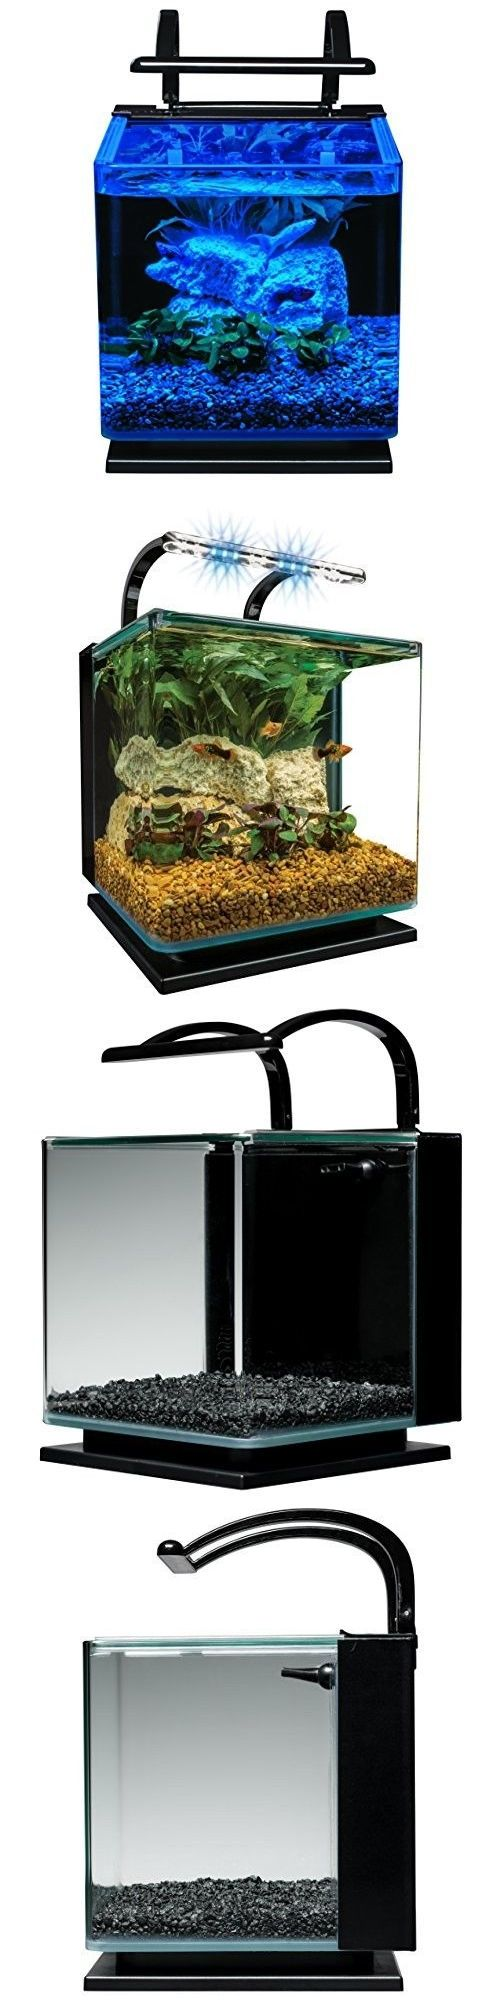 17 best ideas about 3 gallon fish tank on pinterest for 2 gallon betta fish tank